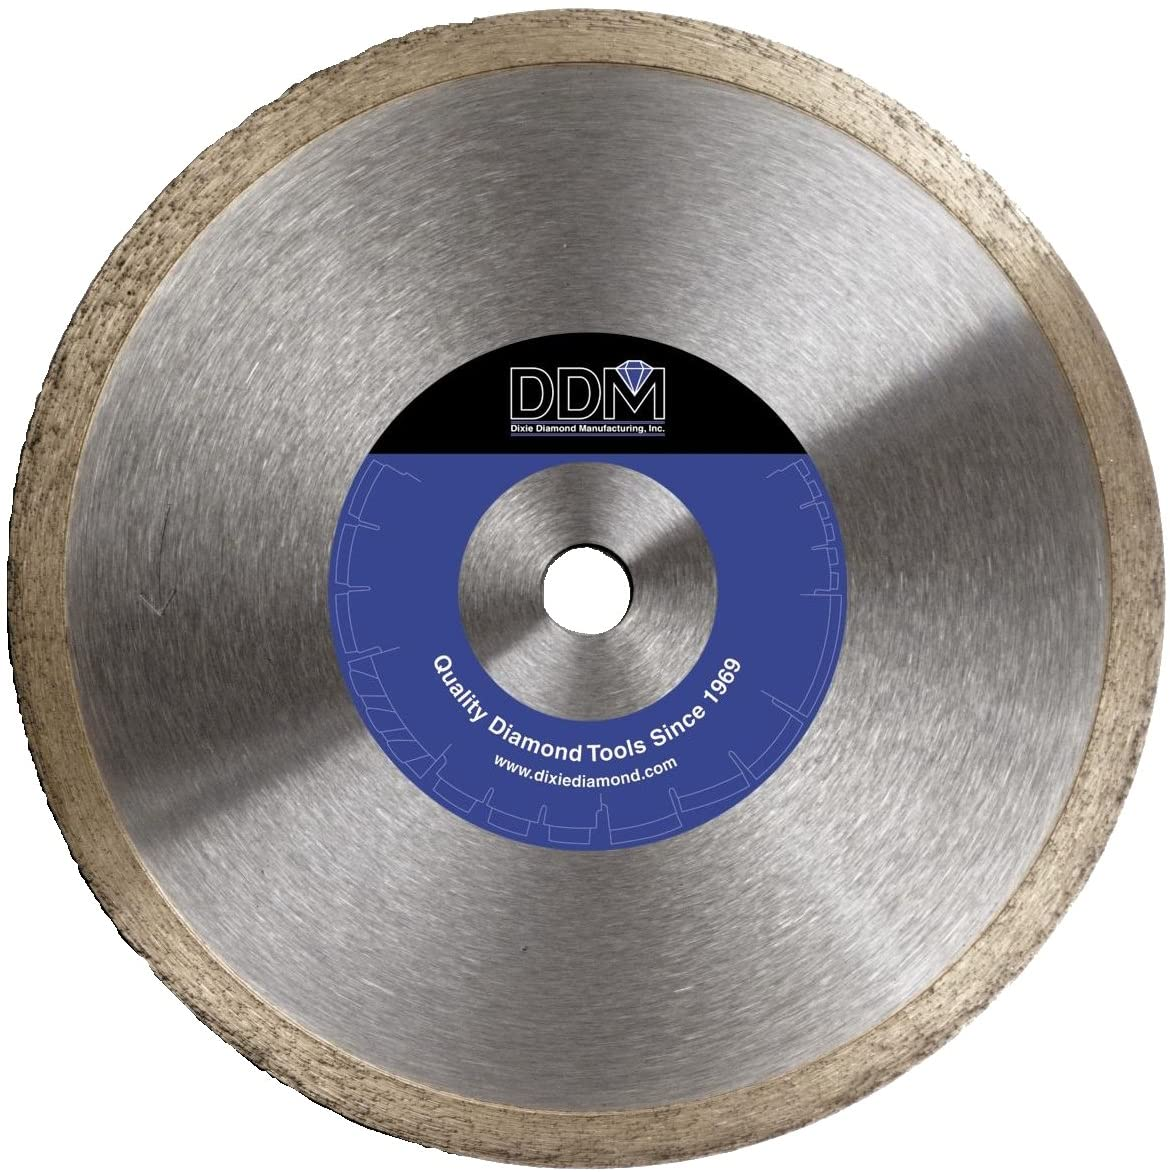 Dixie Diamond Manufacturing T206 Tile Blade Premium Grade for Wet Cutting, 6-Inch X 0.060-Inch X 5/8-Inch